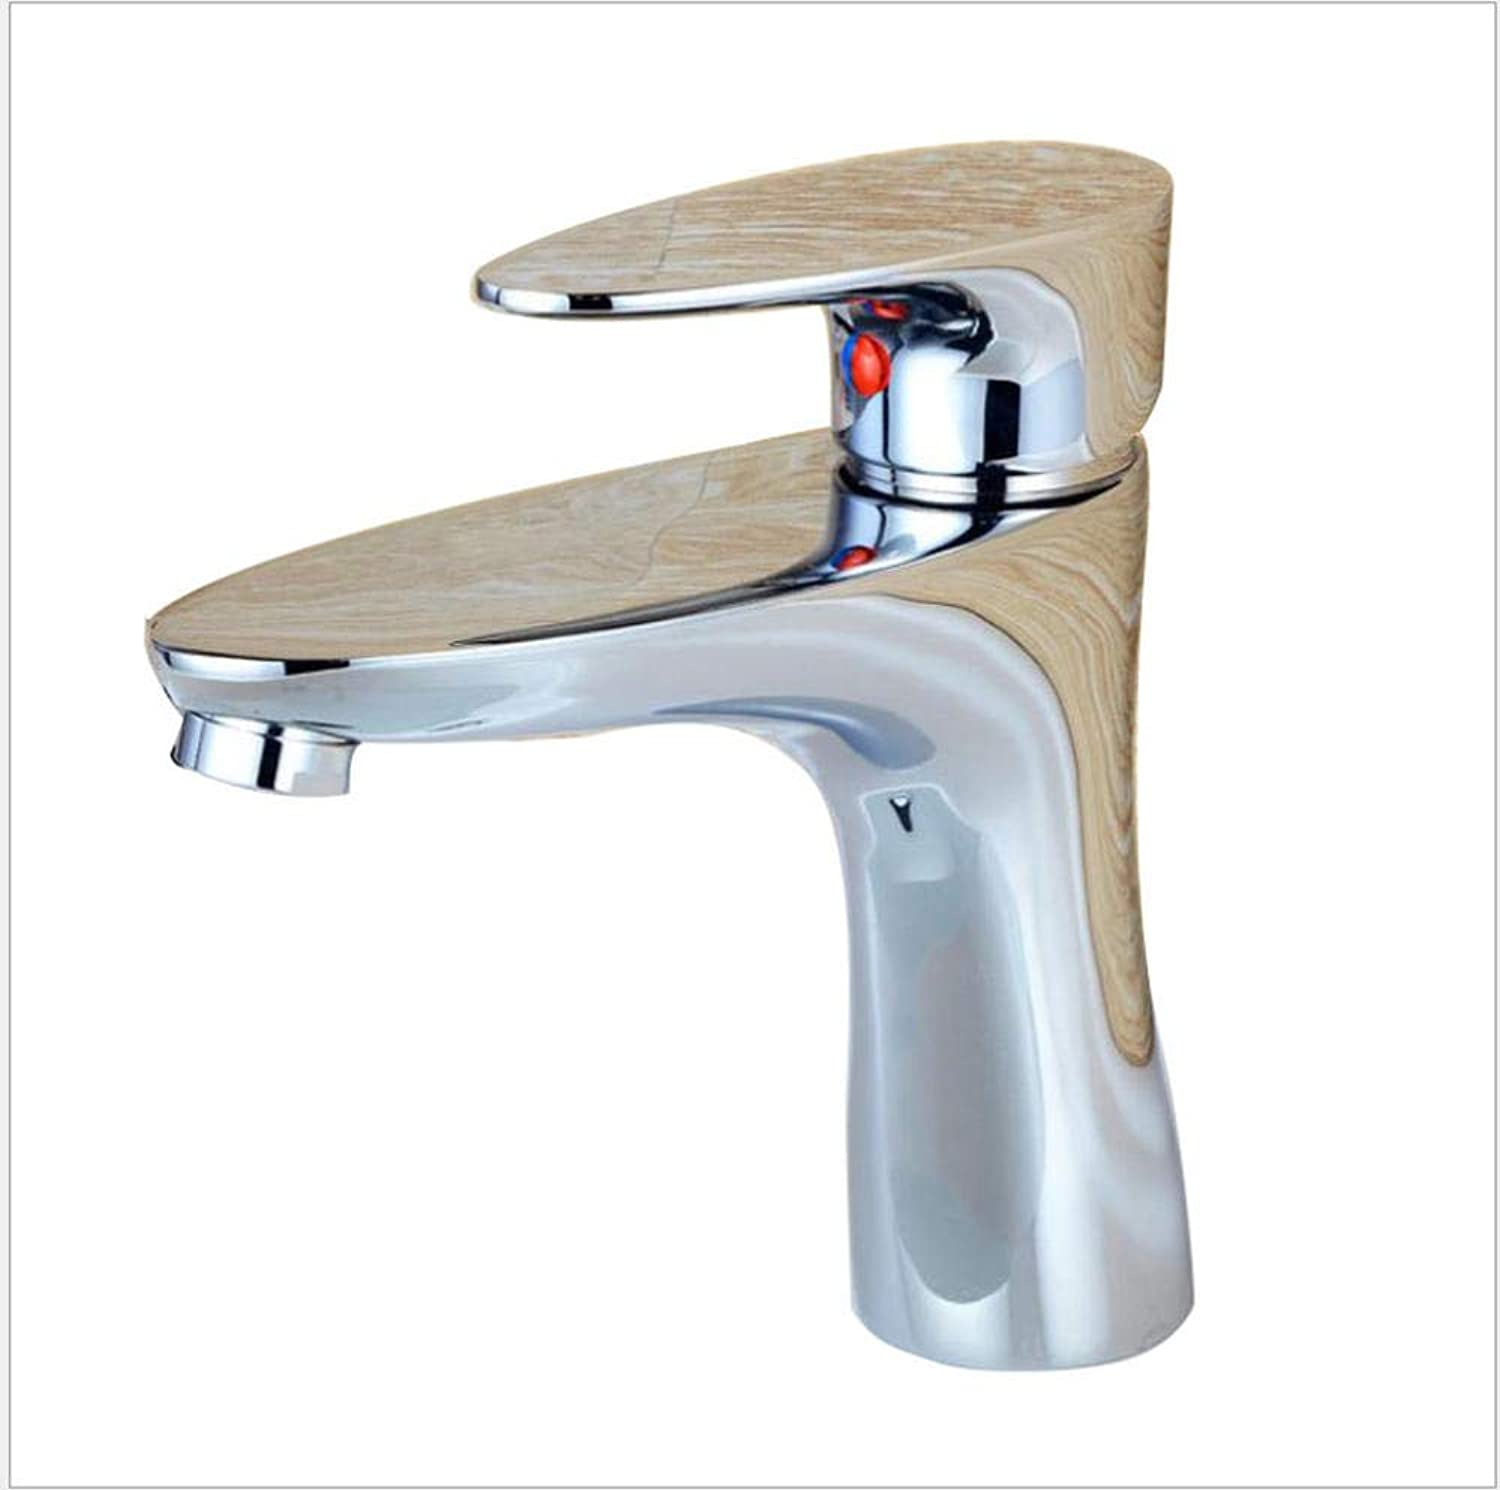 Kitchen Sink Taps Bathroom Sink Taps Bathroom Faucet, Bathroom Bathroom, Basin, Ceramic Basin Faucet, Copper Cold And Hot Water Mixing Single-Hole Faucet